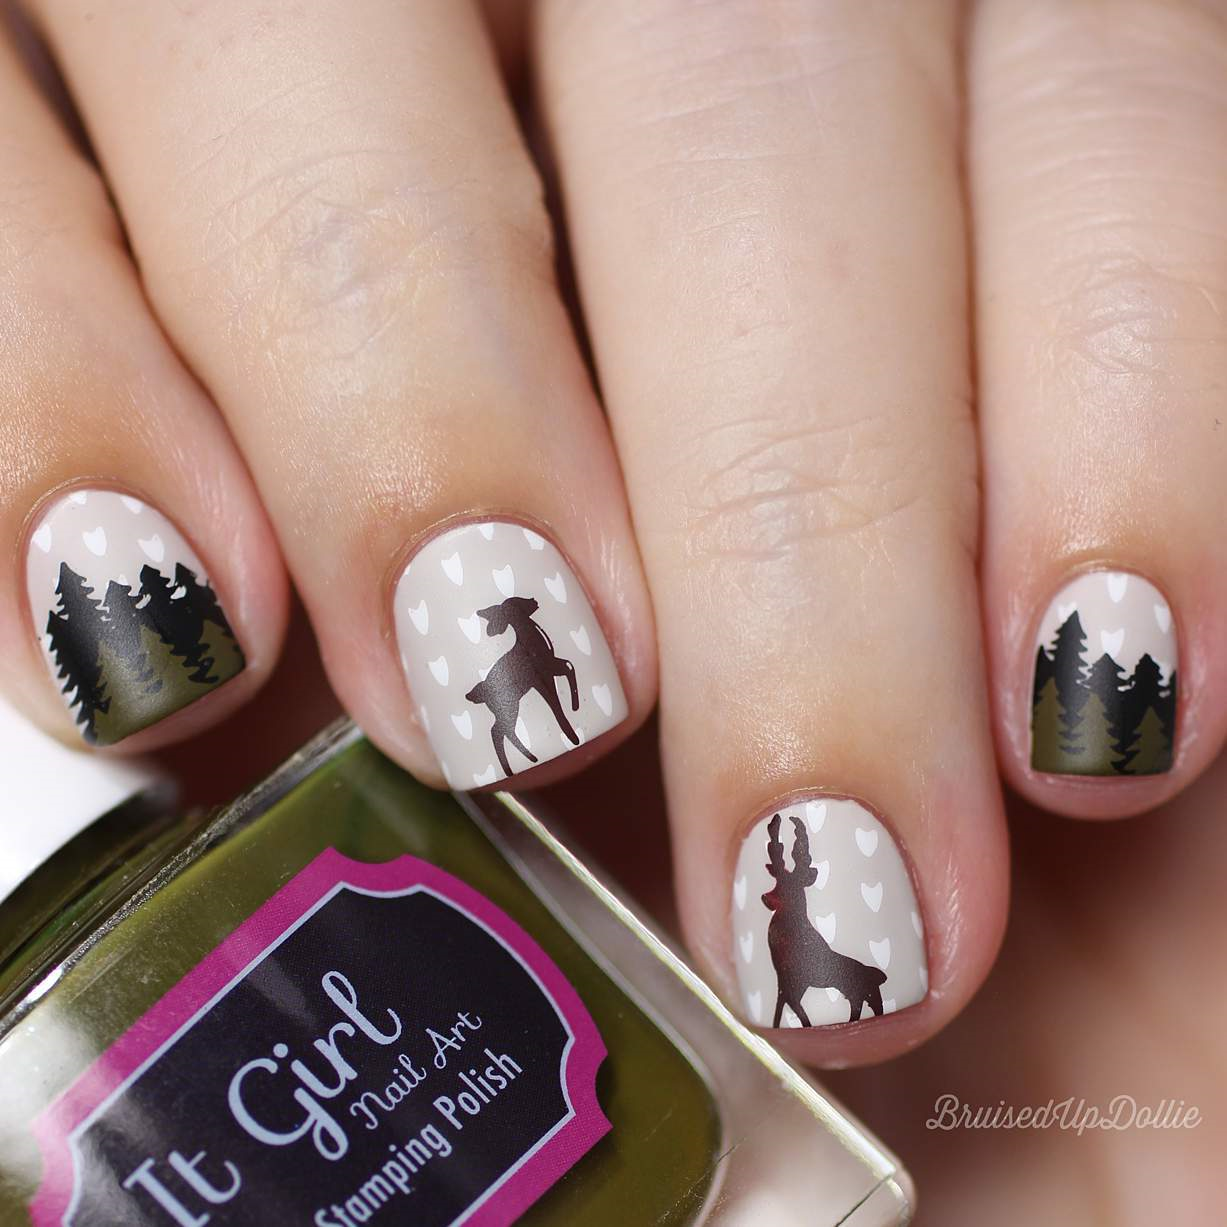 Woodland Chic nail art stamping plate by Uber Chic. Available at www.lanternandwren.com.